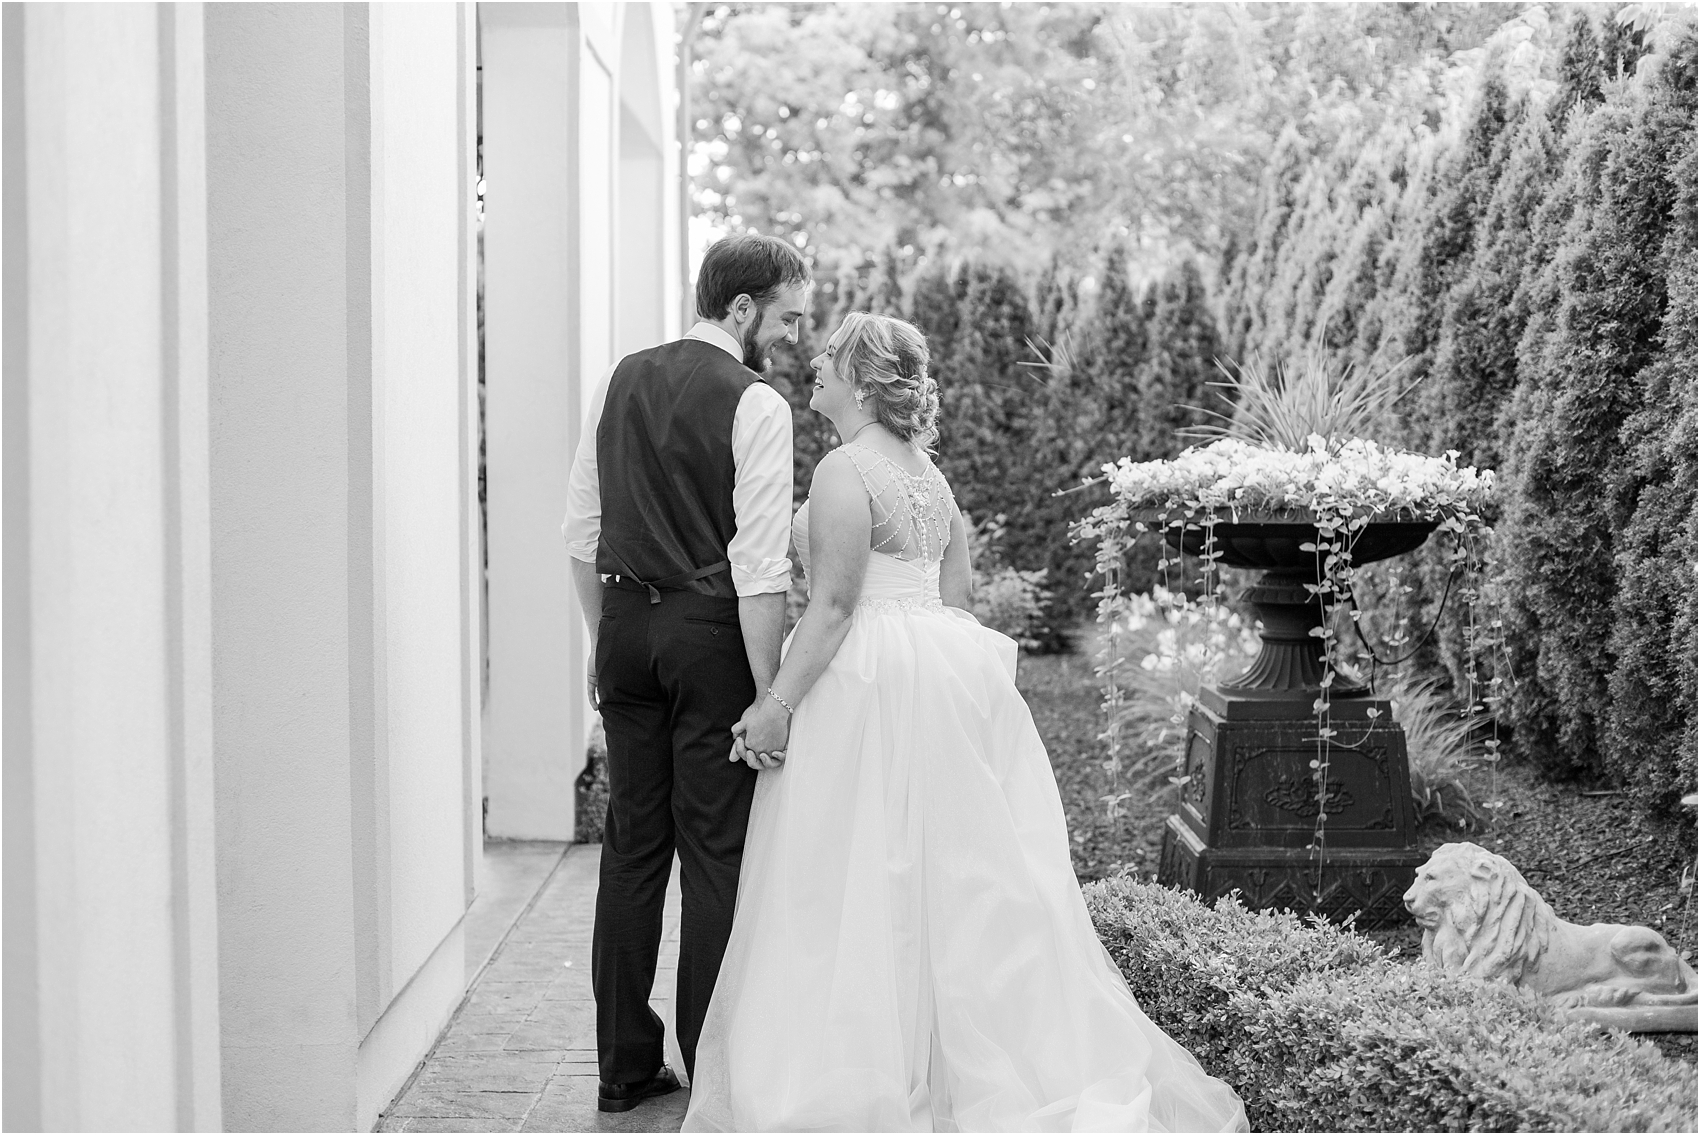 lord-of-the-rings-inspired-wedding-photos-at-crystal-gardens-in-howell-mi-by-courtney-carolyn-photography_0101.jpg